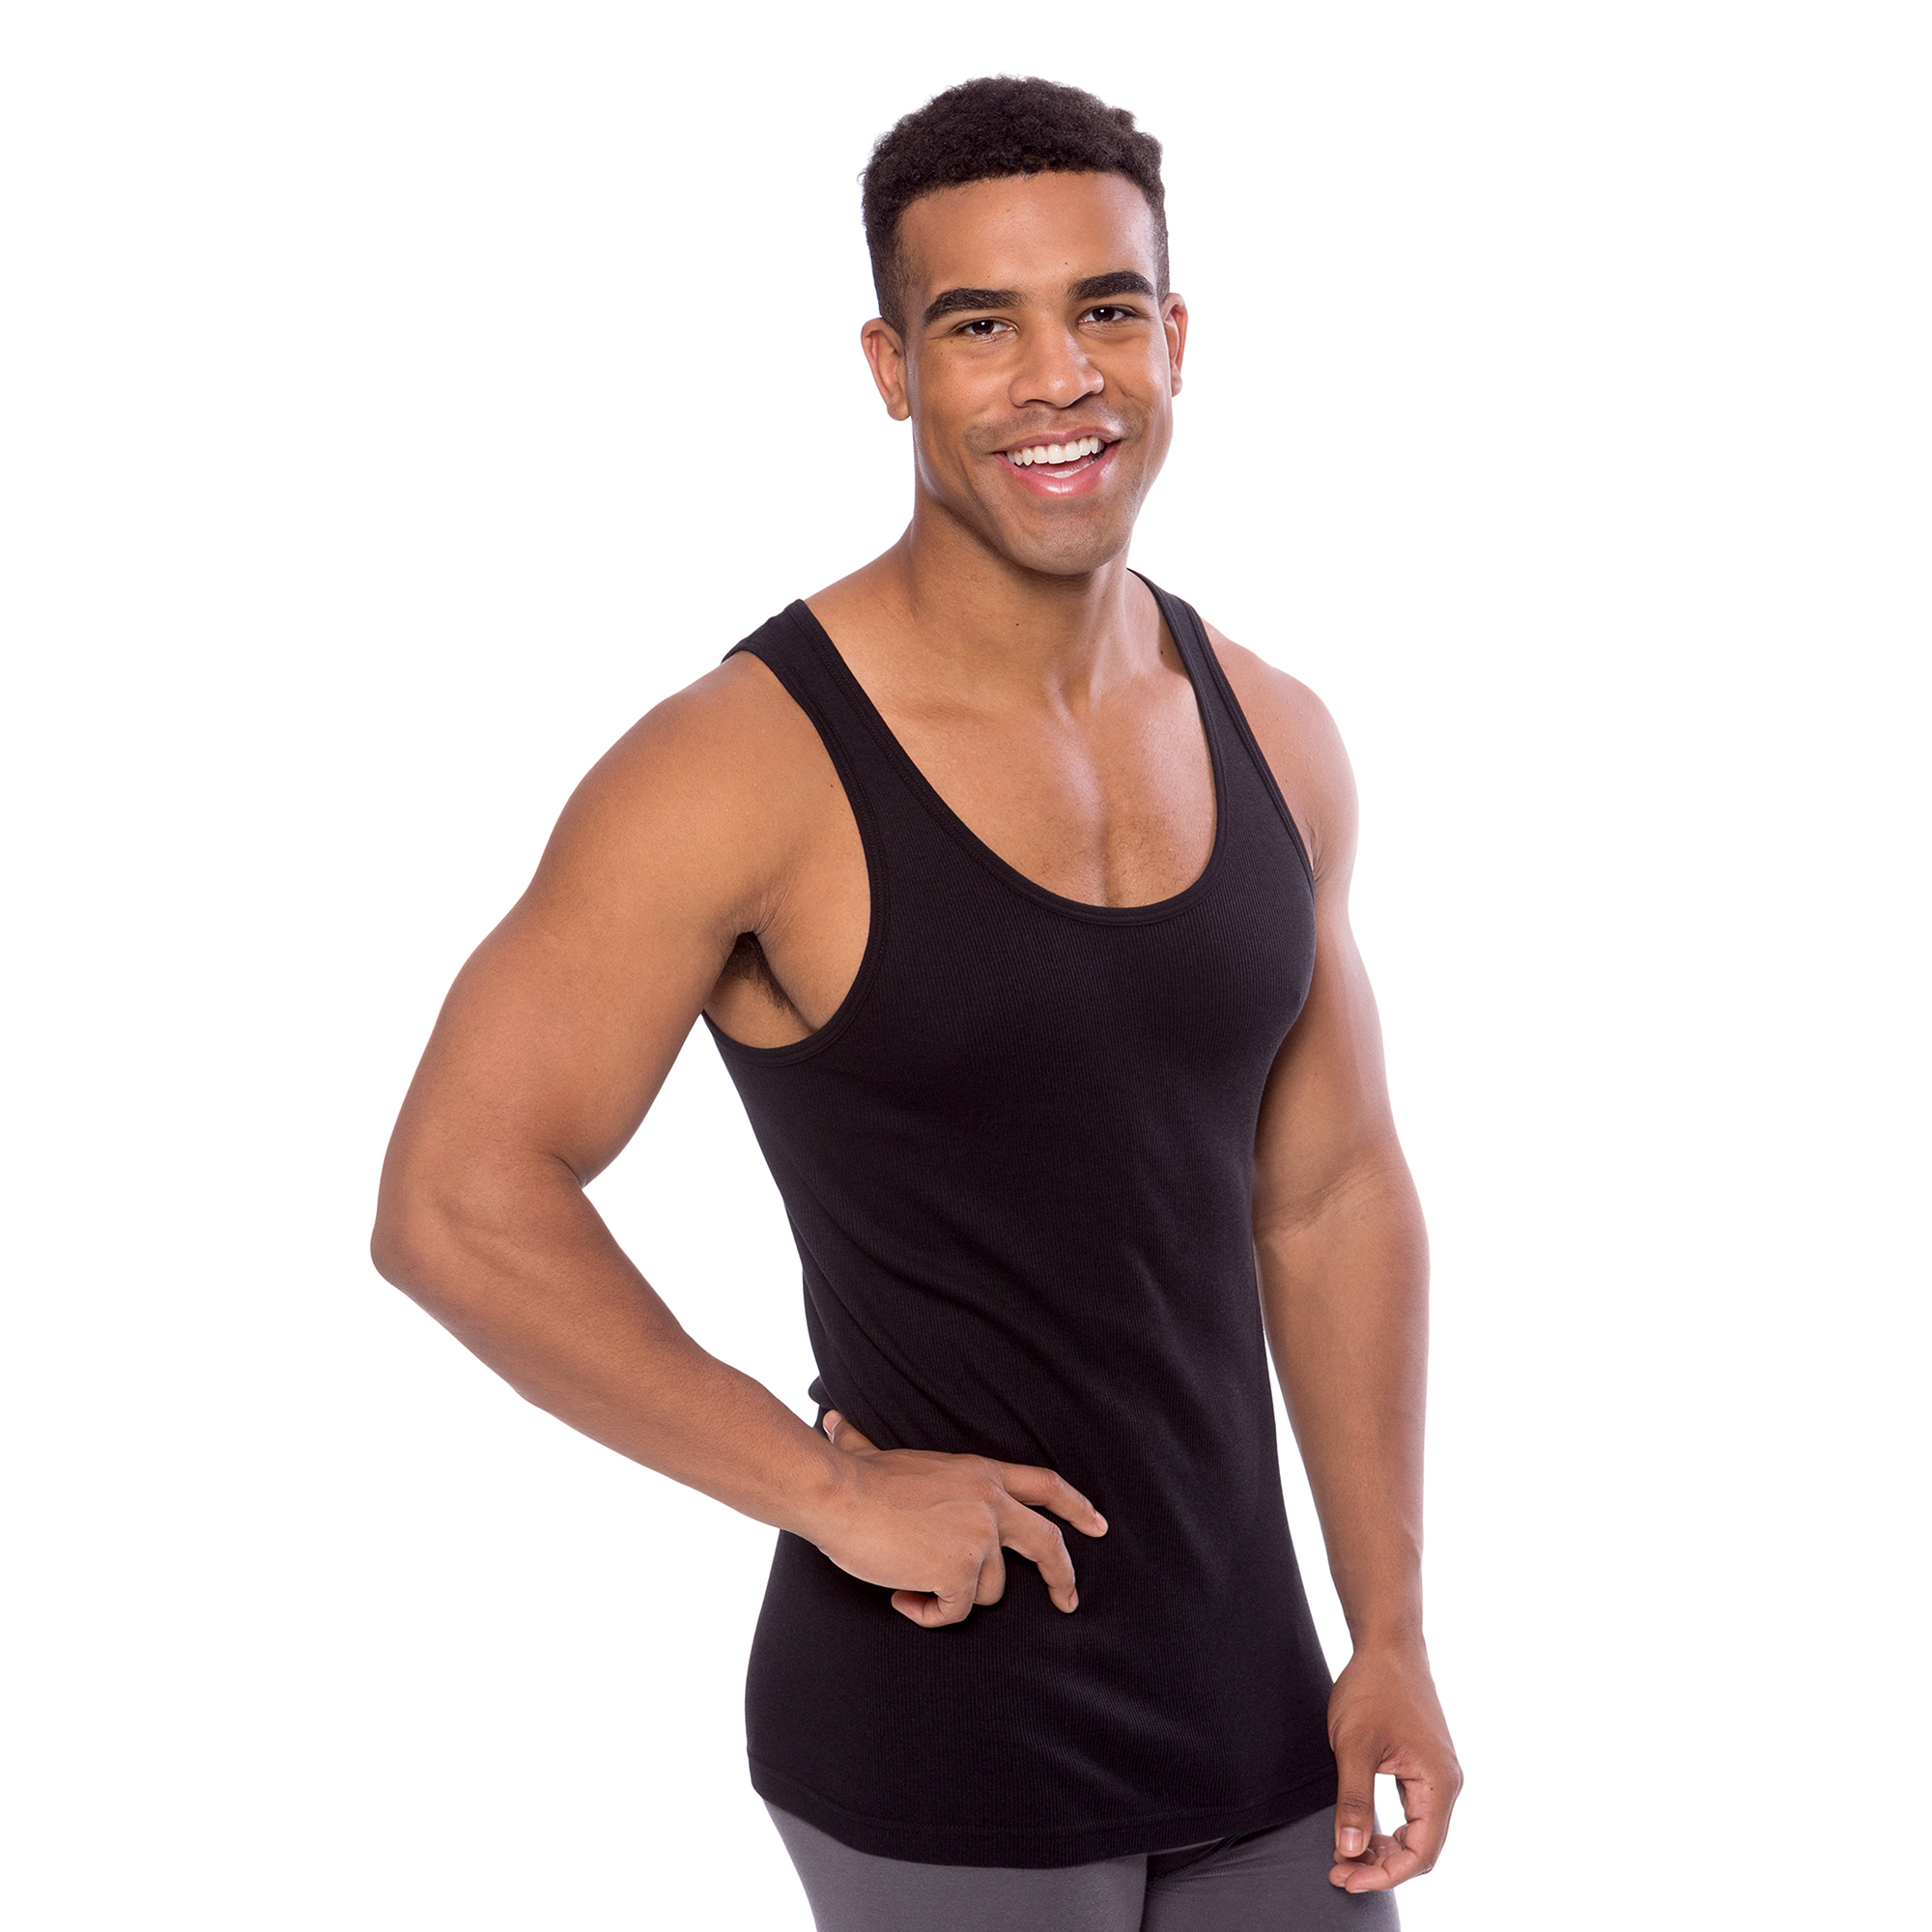 daab4974b191d TexereSilk - Texere Men s Ribbed Tank Top Undershirt (3-Pack) Comfortable  Men s Under Shirts MB6304 - Walmart.com